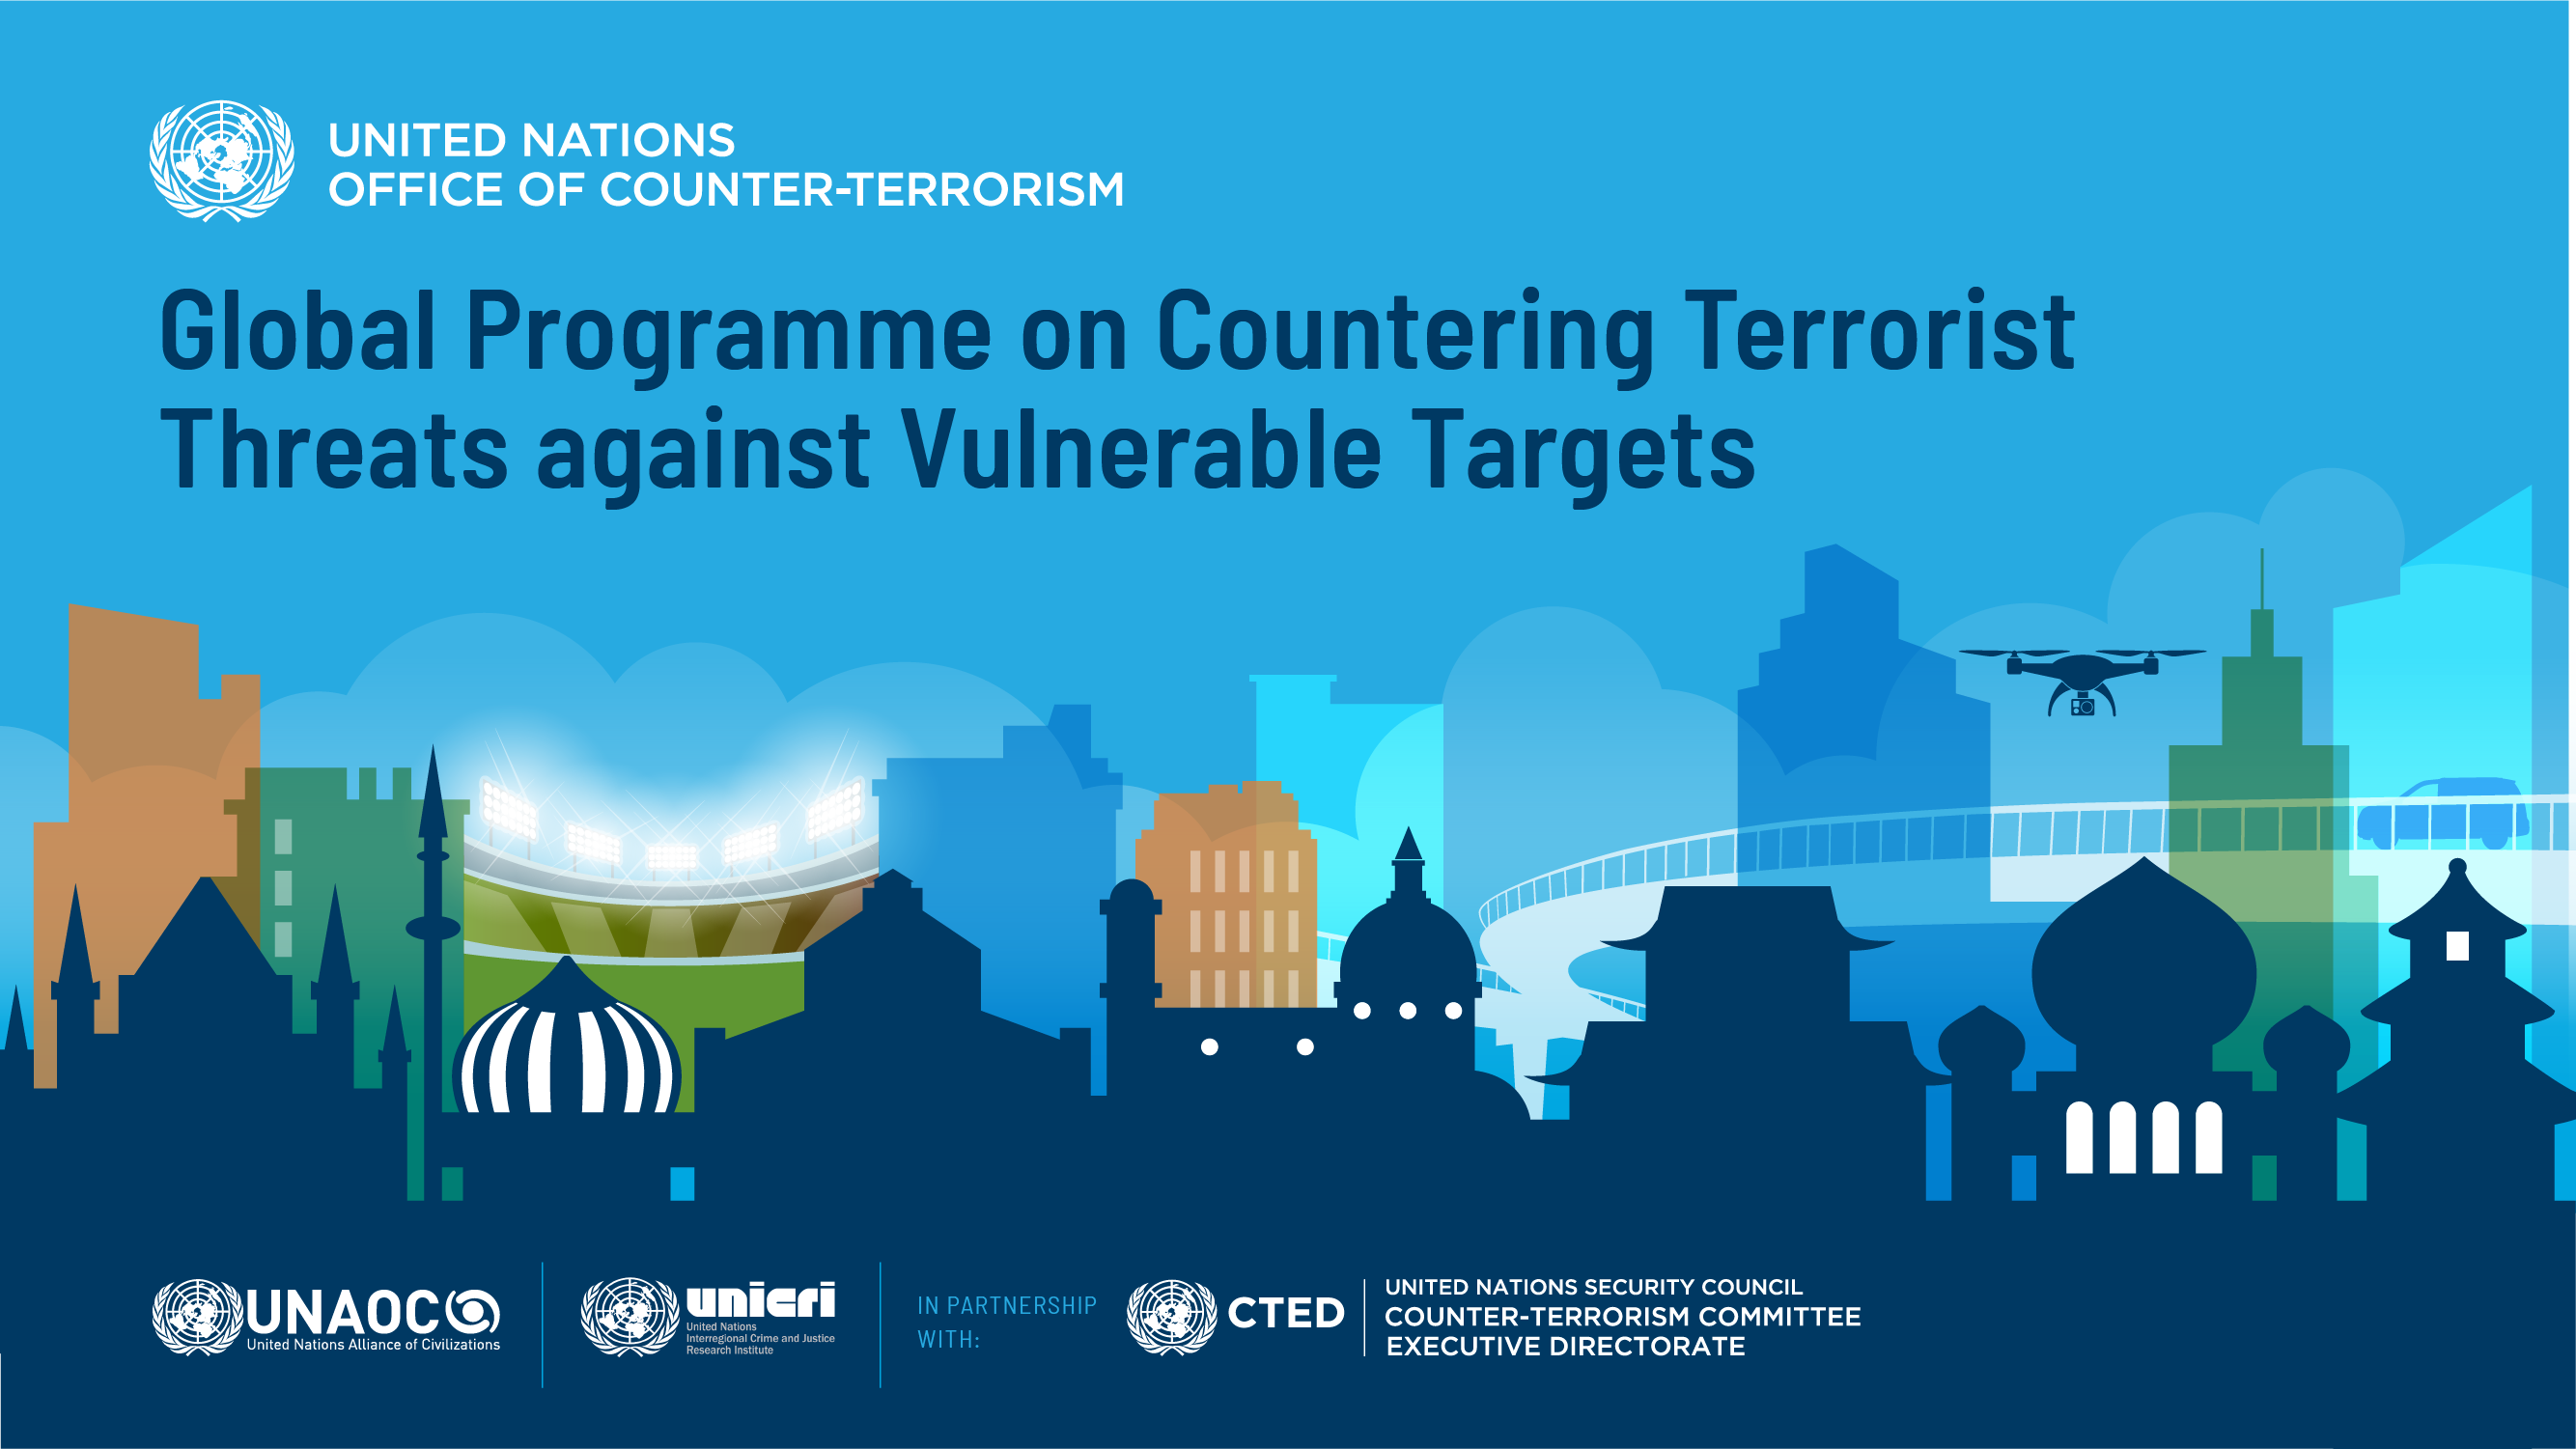 Visual Identity of the Global Programme on Countering Terrorist Threats against Vulnerable Targets